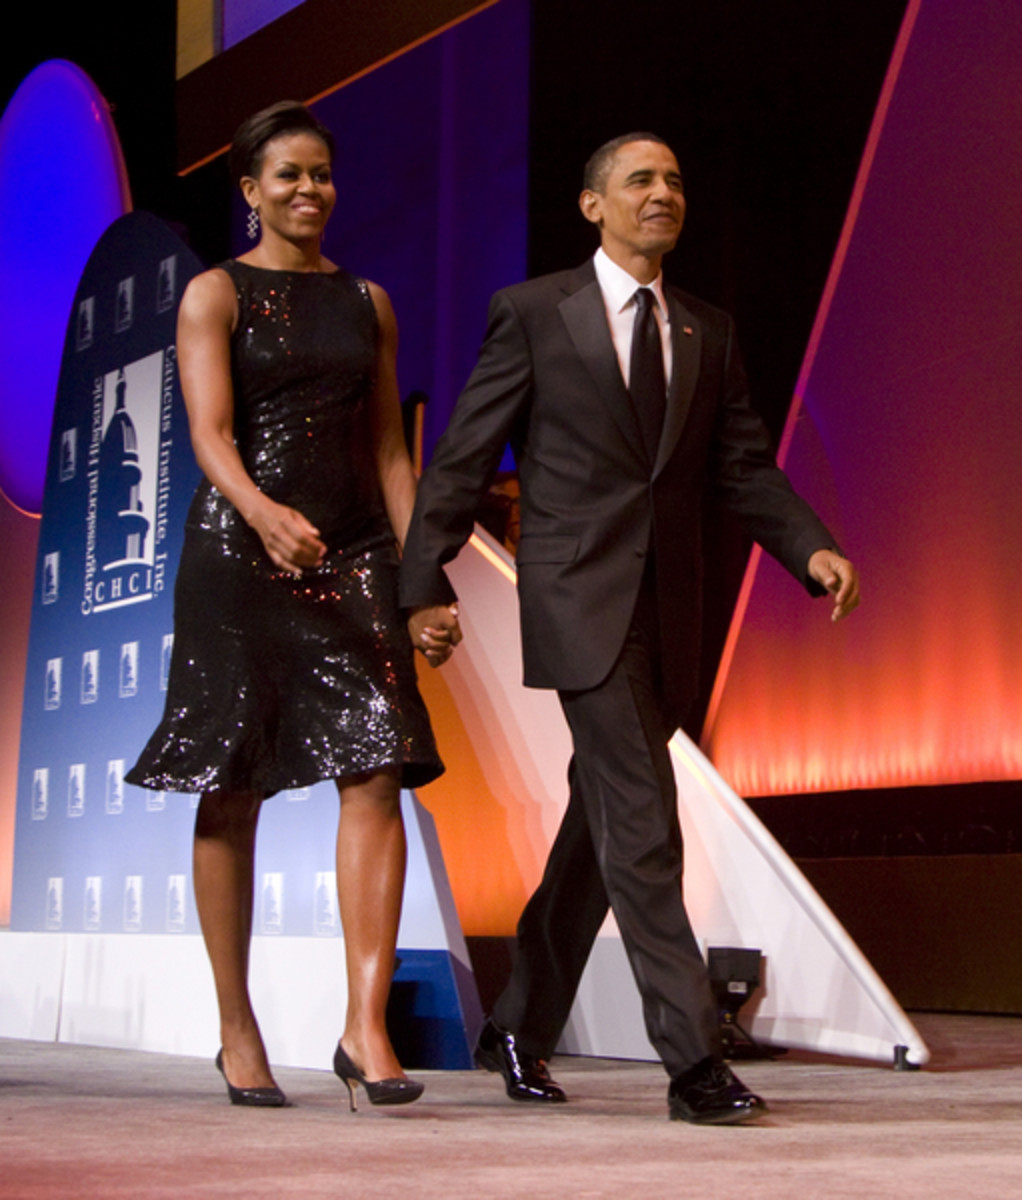 Michelle_and_Barack